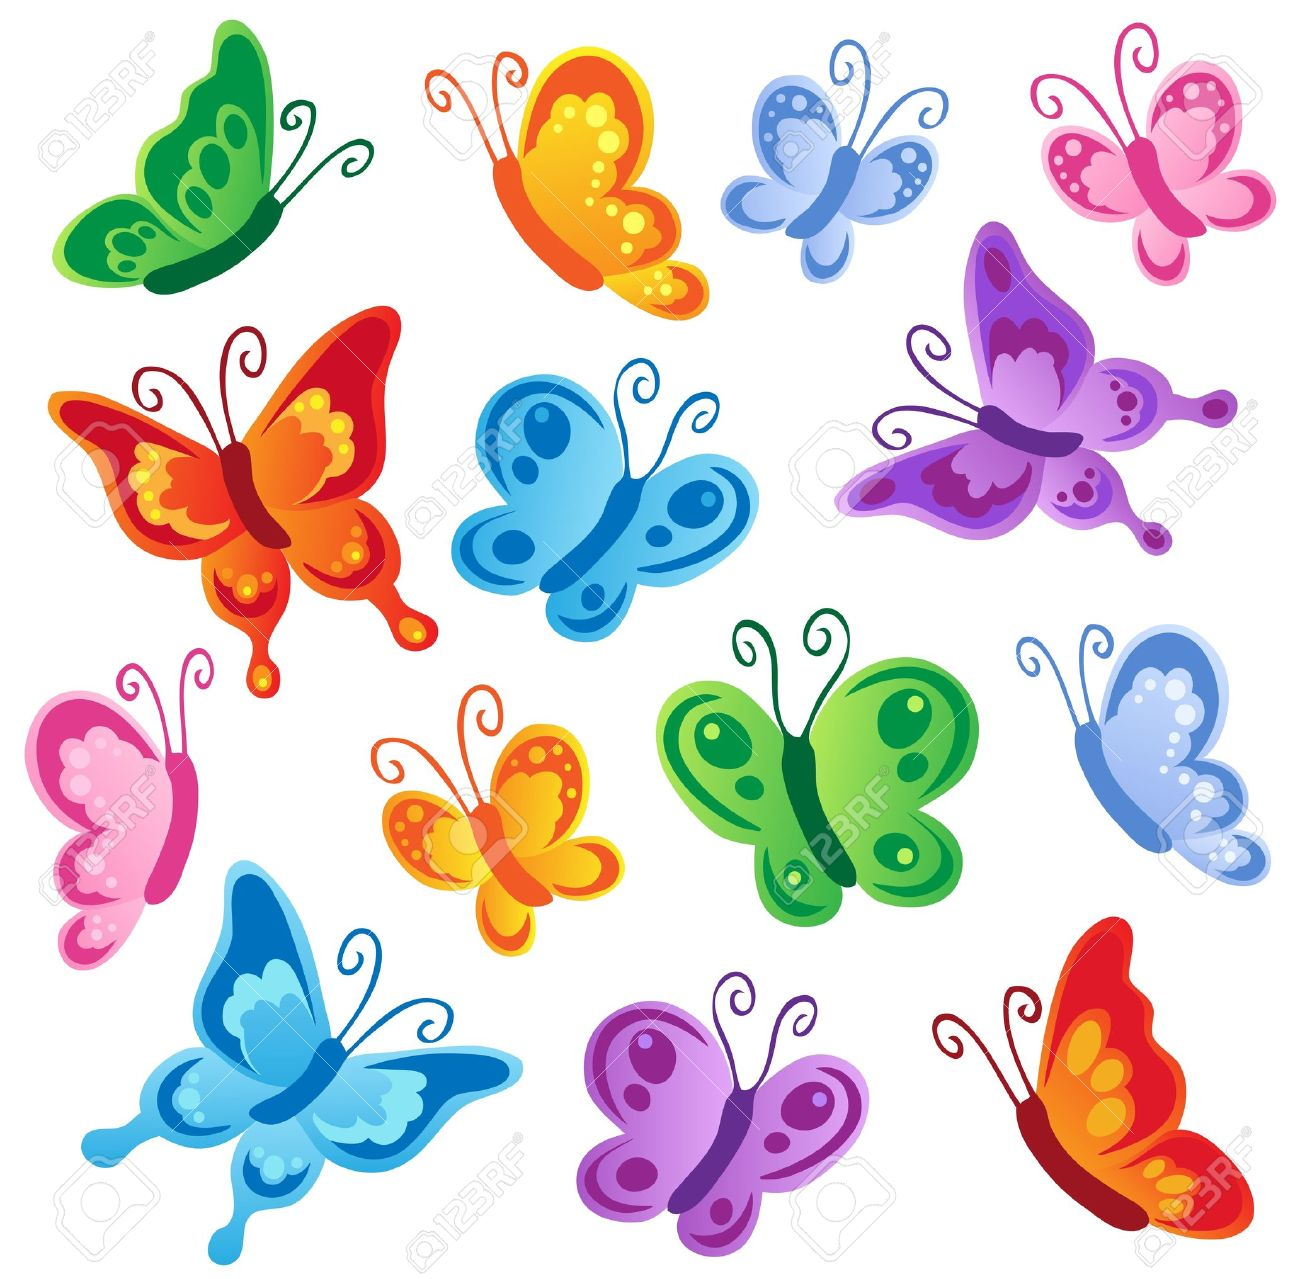 25,136 Butterfly Cartoon Stock Vector Illustration And Royalty ...